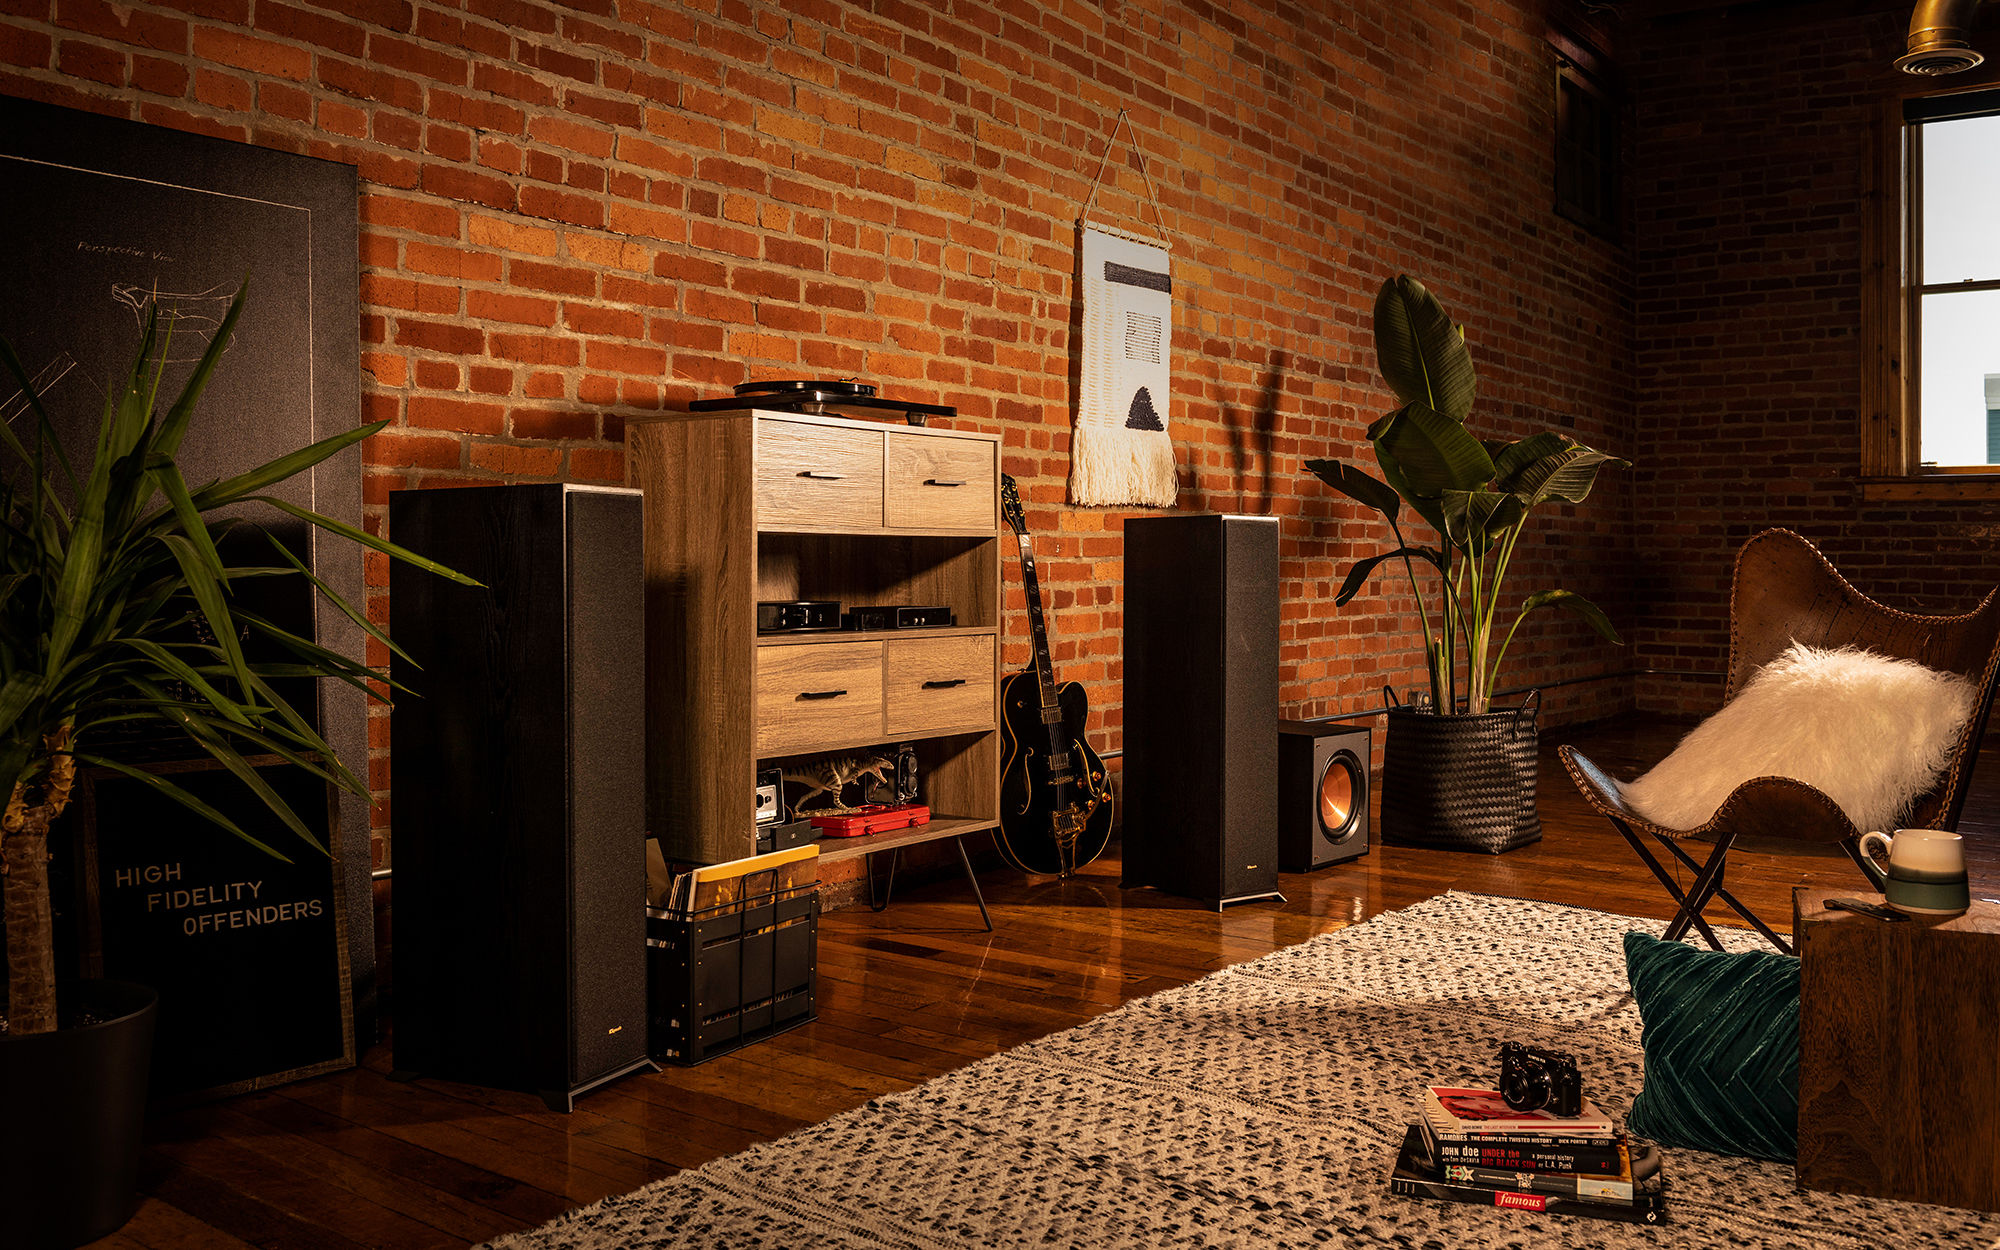 R-610F finished speakers with a guitar and wooden shelf